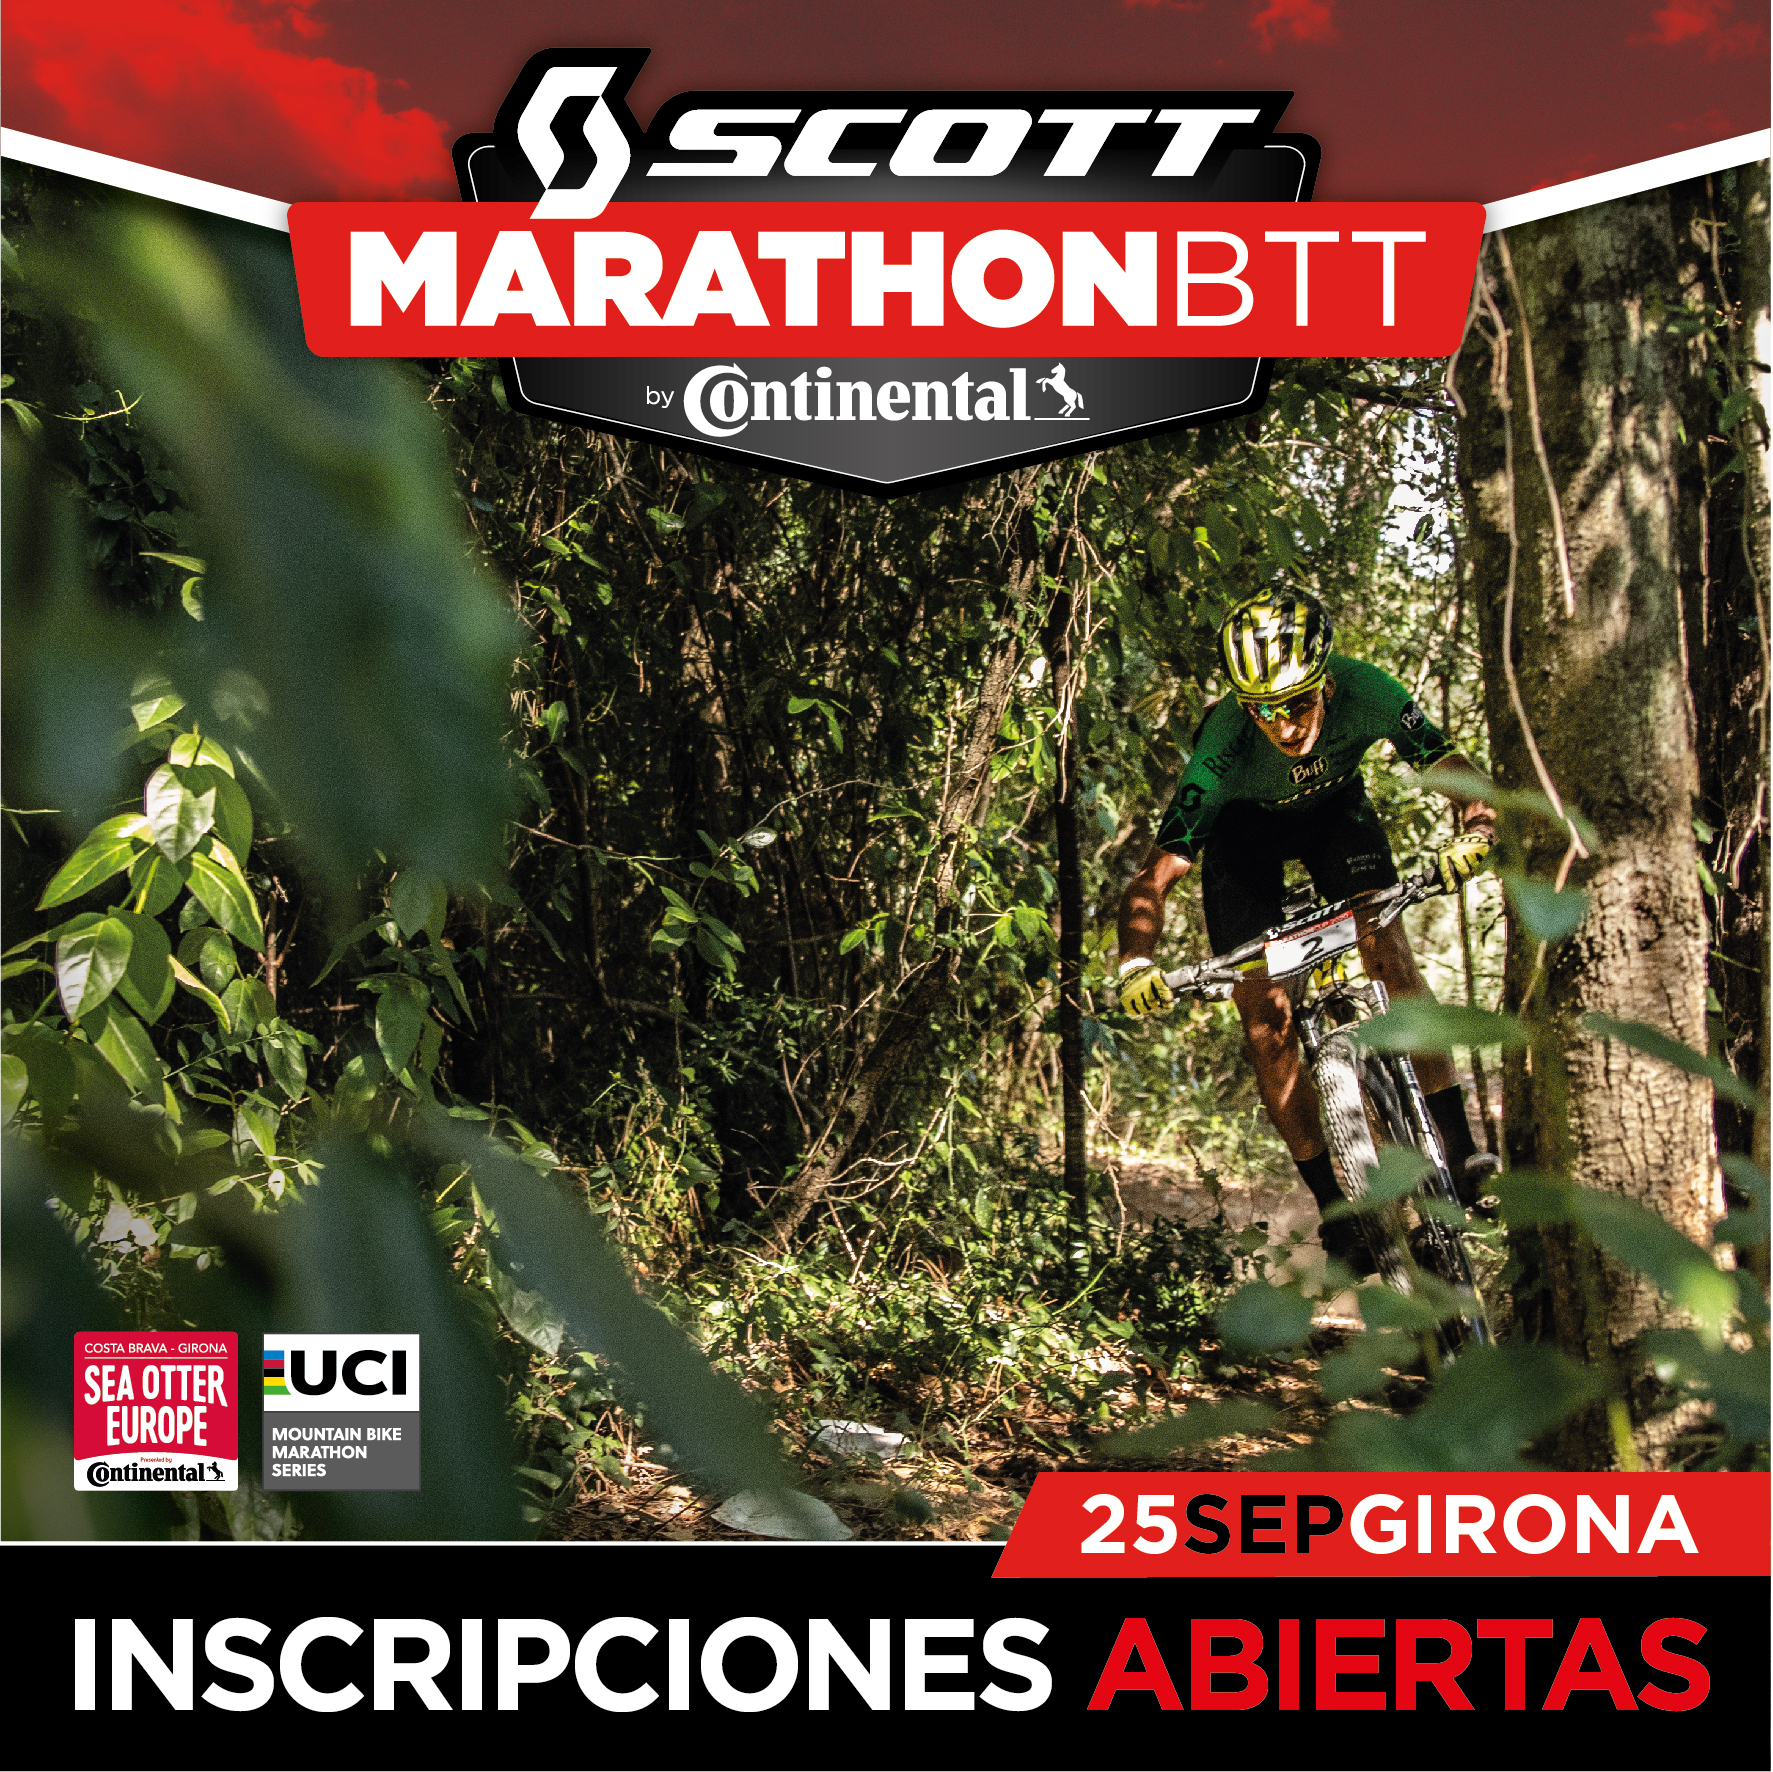 LA SCOTT MARATHON BY CONTINENTAL DE GIRONA ABRE INSCRIPCIONES